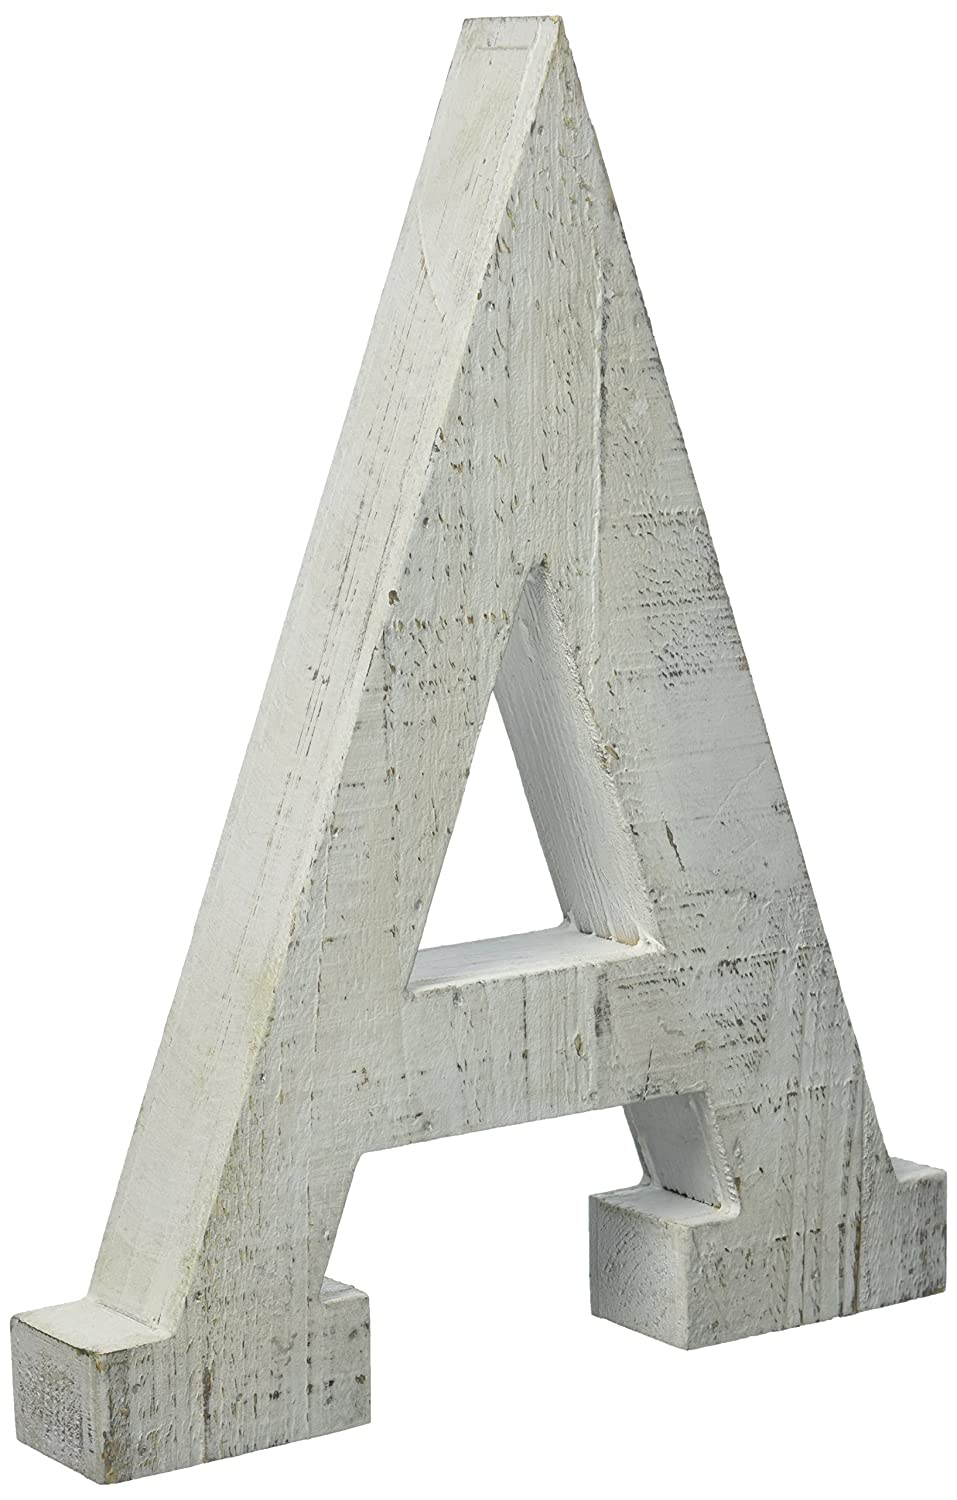 Adeco Wooden Hanging Wall Letters A - White Decorative Wall Letter of Living Room, Baby Name and Bedroom Decor, Whitewash Adeco Trading DN0052-A